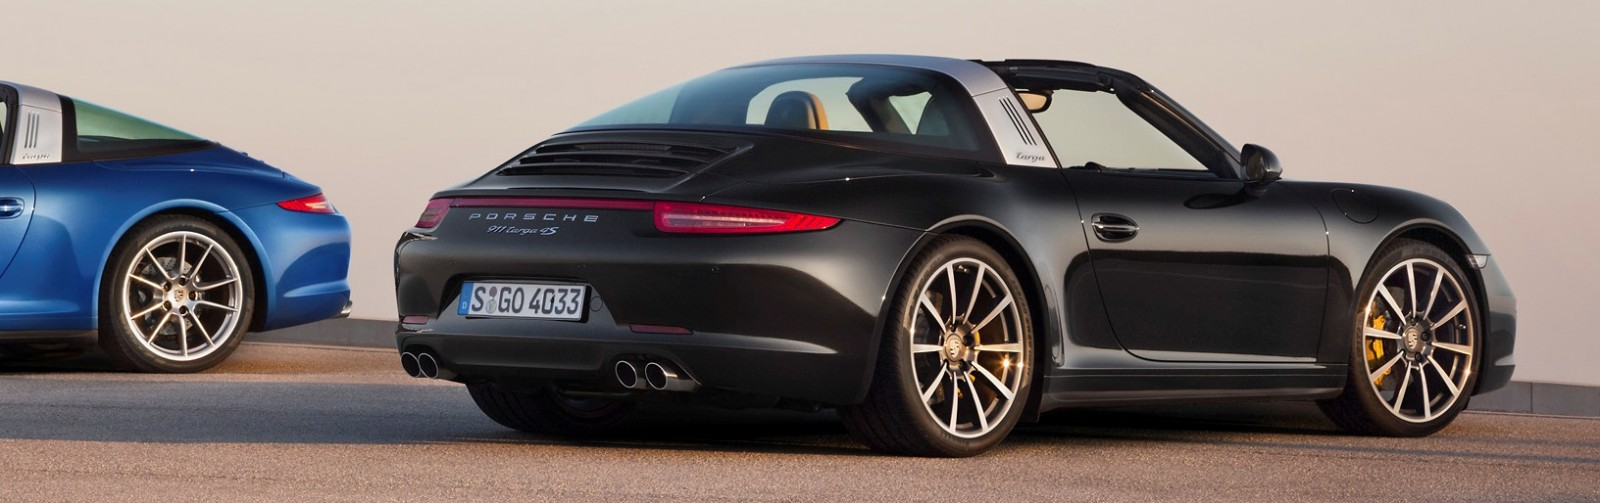 2014 Porsche 911 Targa4 and Targa4S - Roof Animations of 400HP Surf 'n Turf Supercar 3